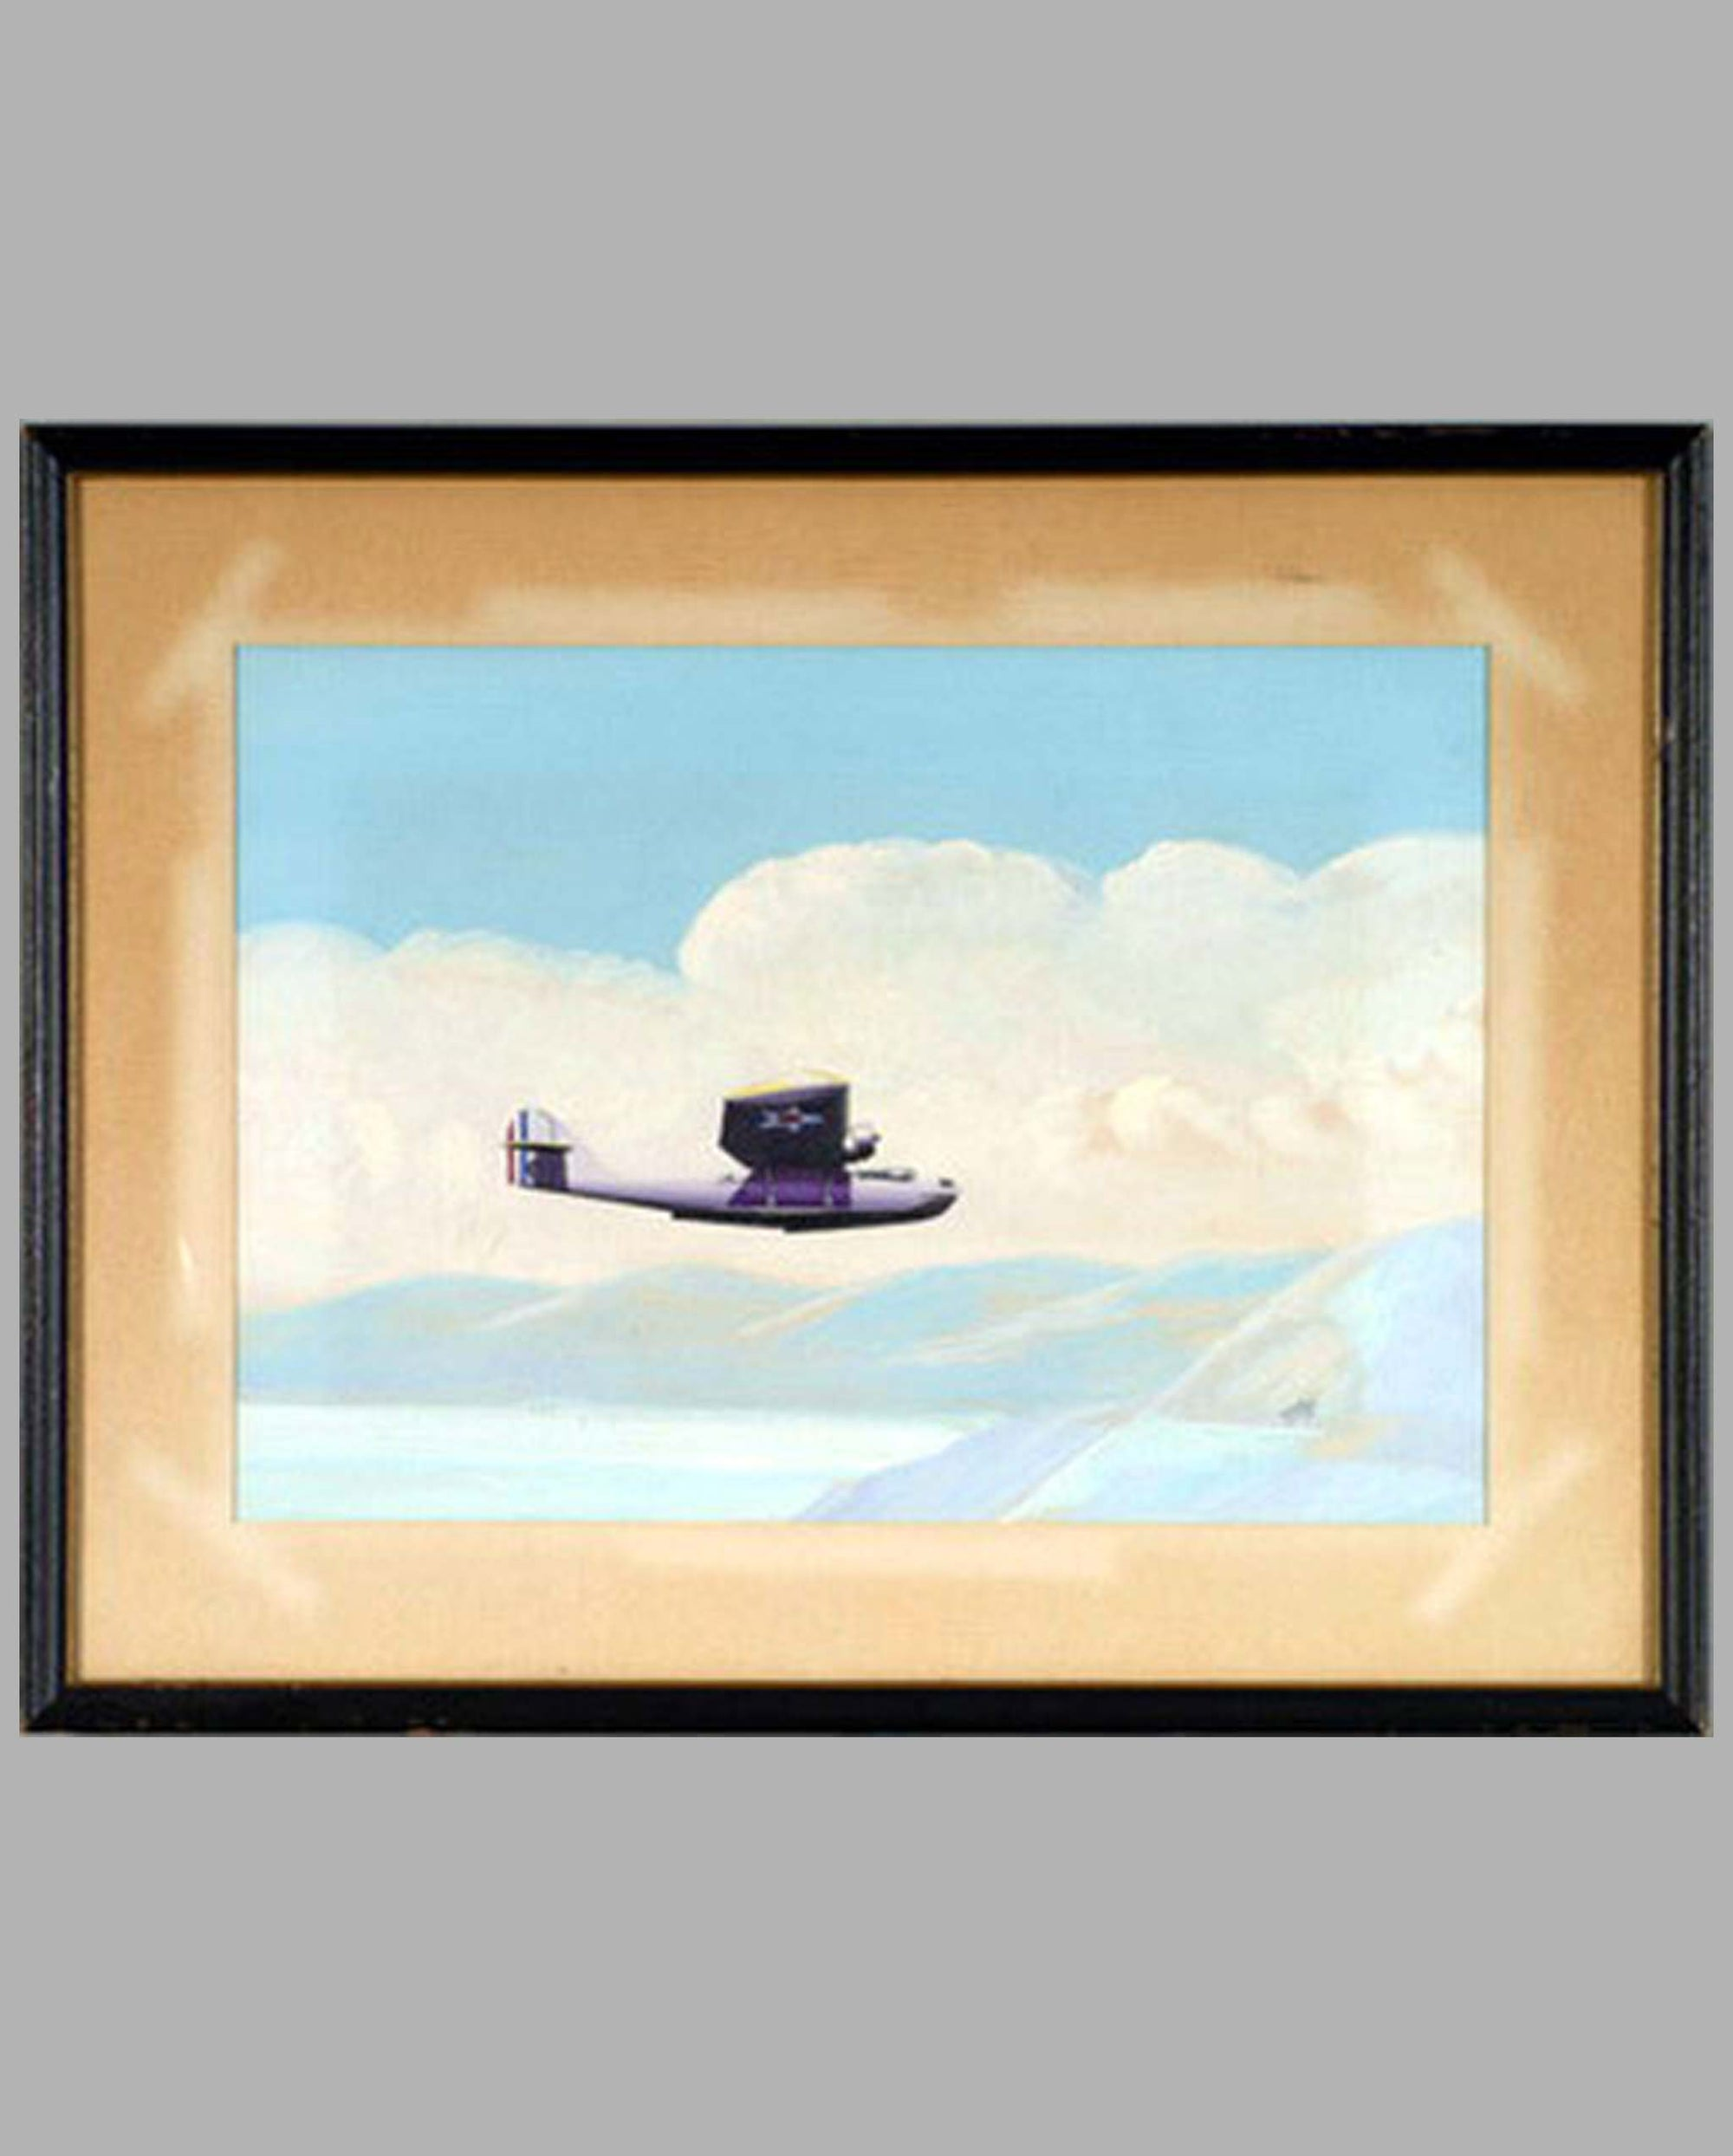 Early PBY Seaplane Prototype painting by Alpnarly Lyster, U.S.A. ca 1937, gouache on board